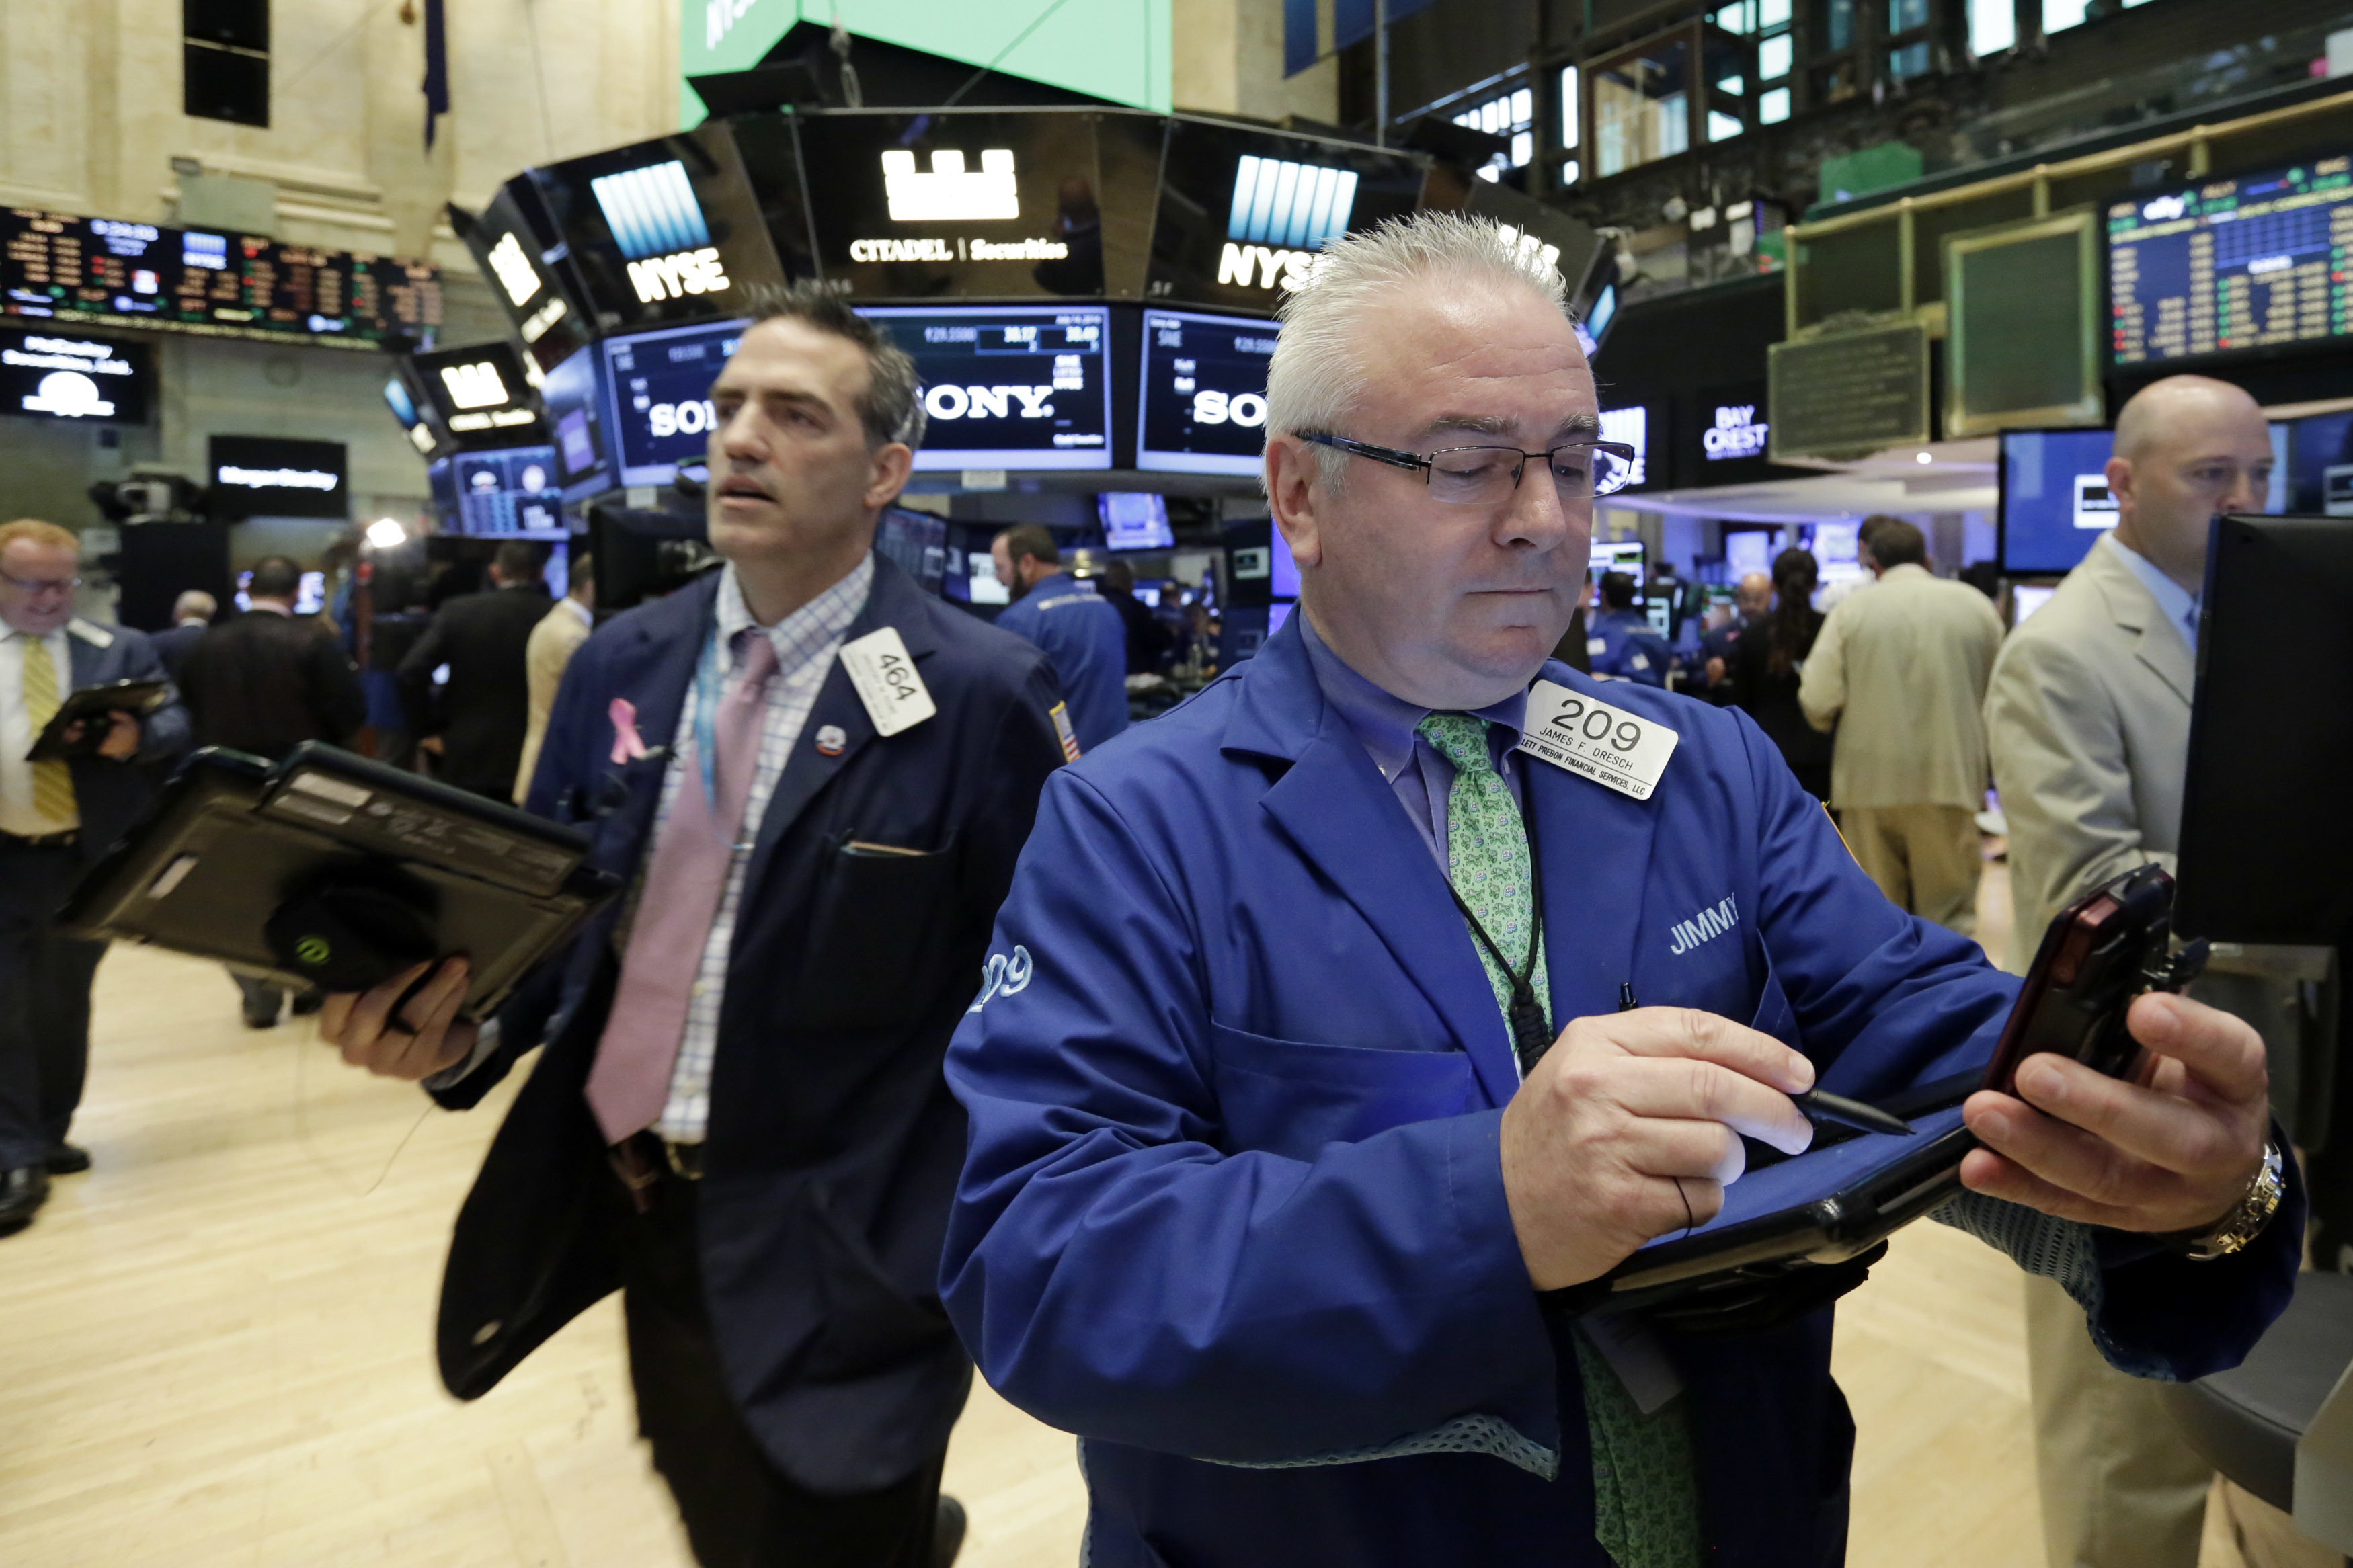 Stocks rise in afternoon trading on solid earnings reports for 14 wall street 23rd floor